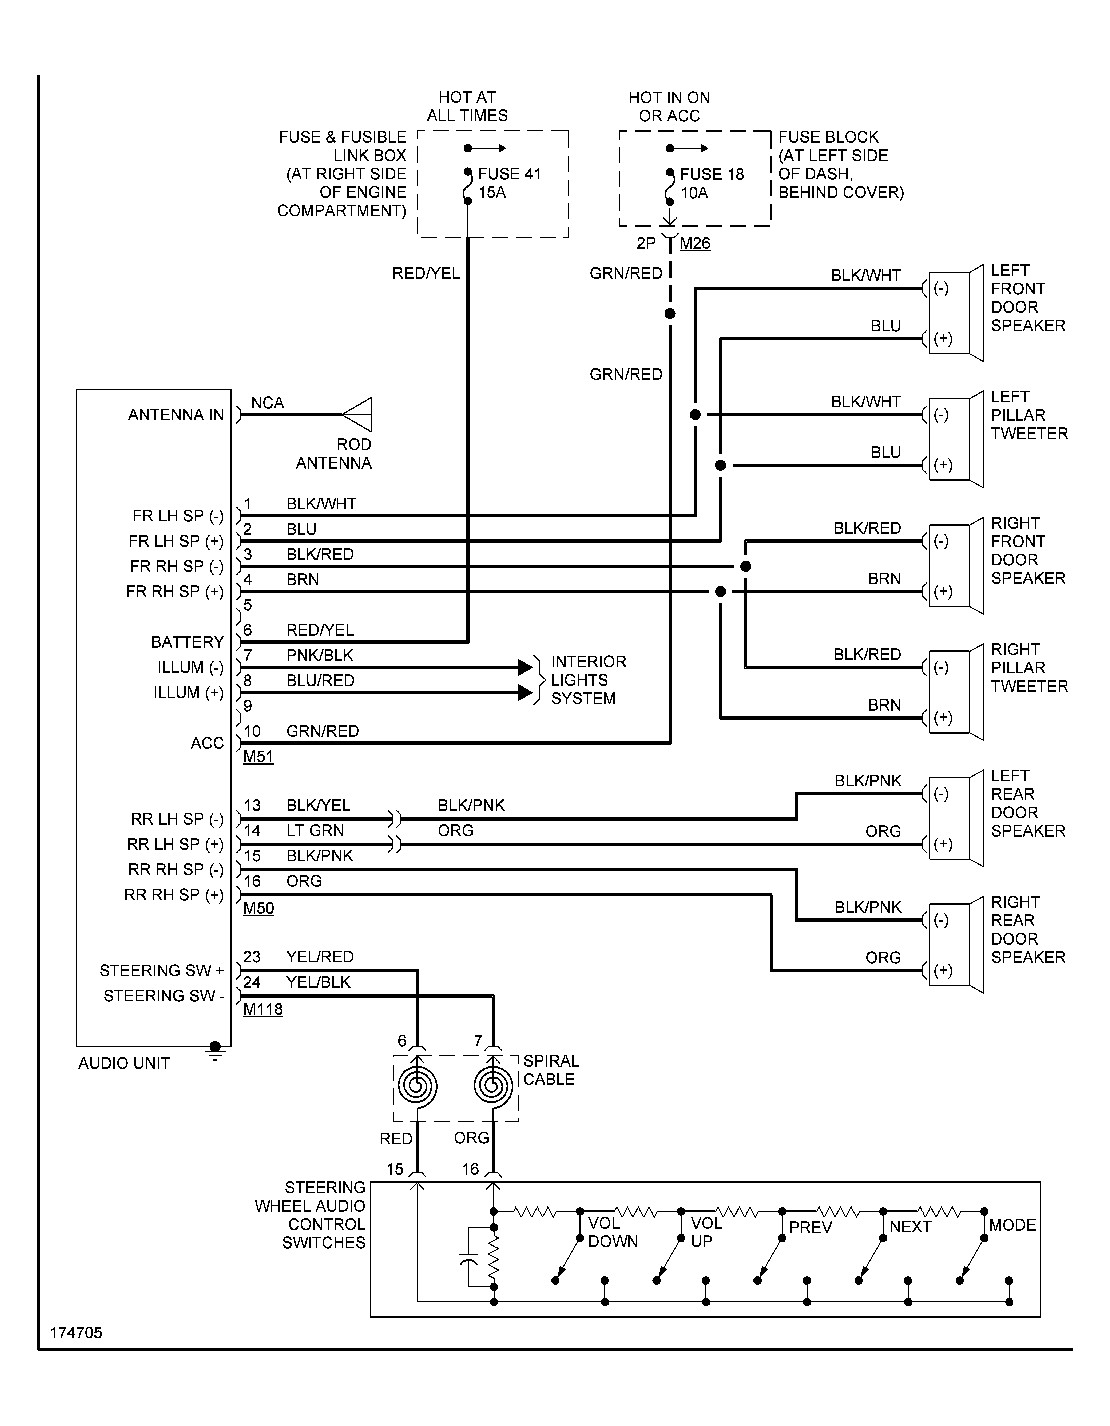 nissan frontier brake controller wiring diagram Download-exelent nissan frontier wiring diagram collection best images for rh oursweetbakeshop info wiring diagram for 1998 nissan frontier wiring diagram for 2002 2-o